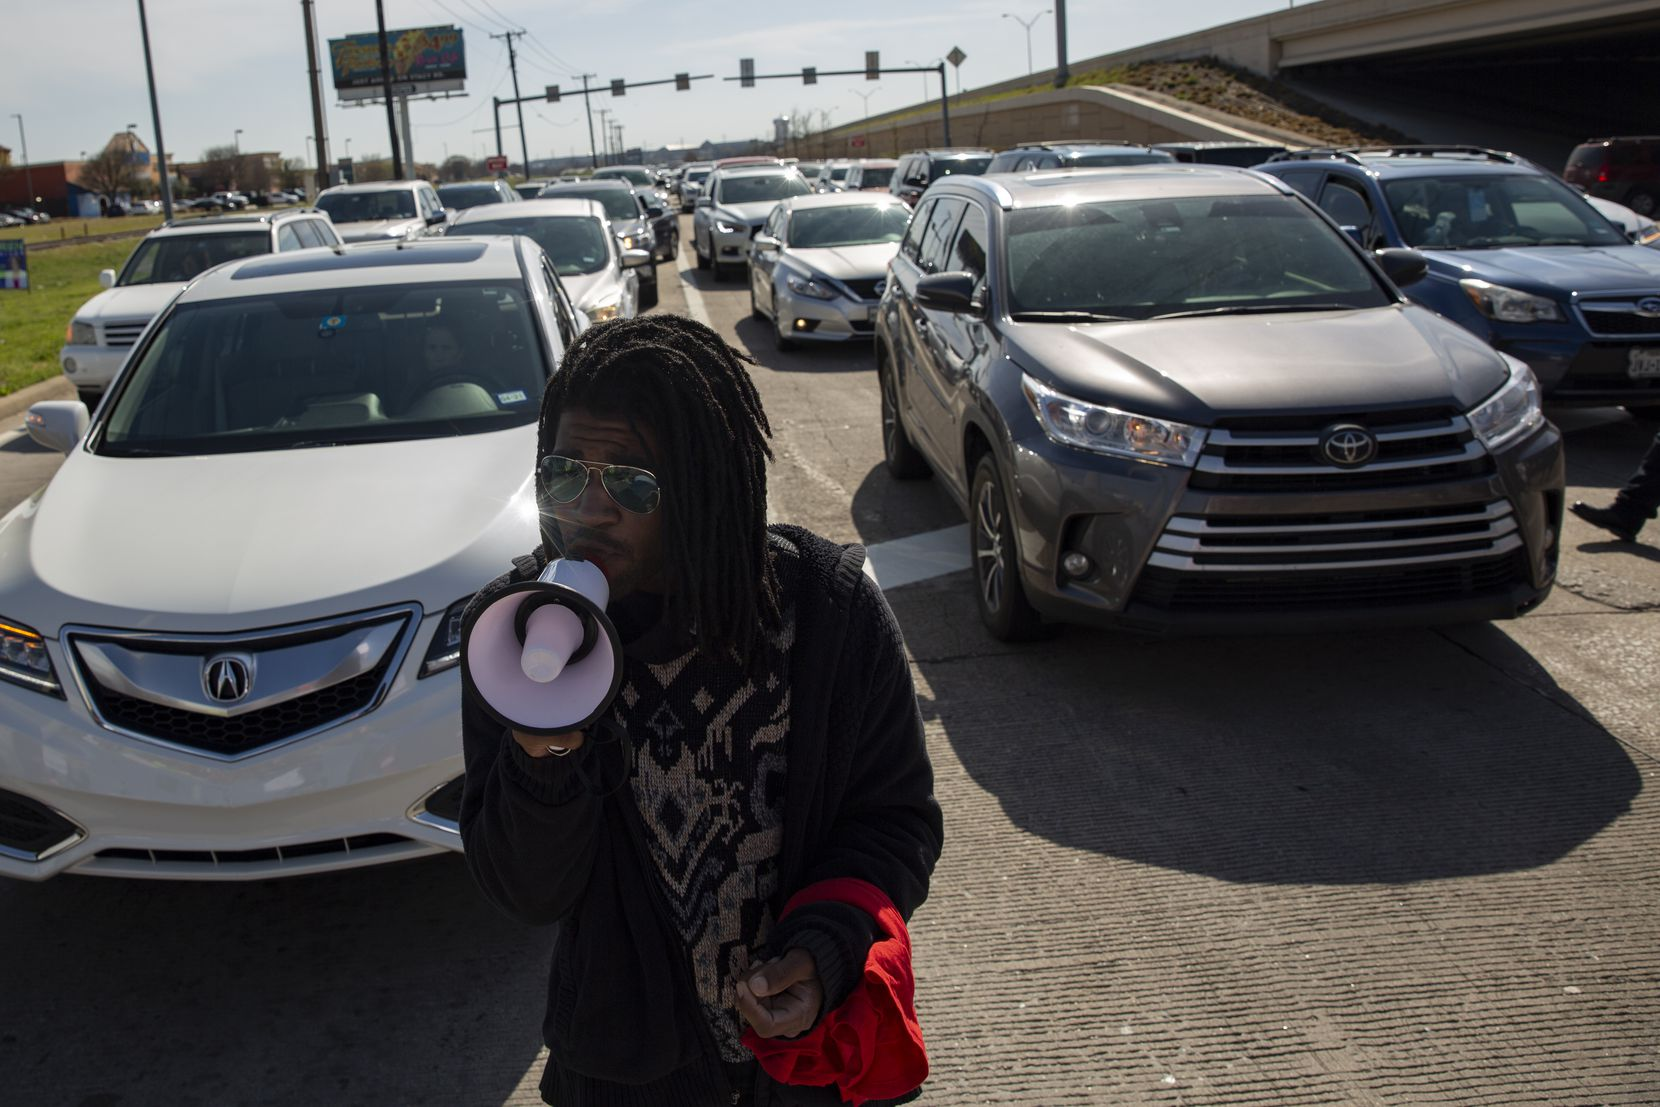 """Quinten Scott thanks people participating in a march outside of the Allen Outlets on Sunday, March 21, 2021 for his older brother Marvin Scott III, who died a week prior while in custody at the Collin County Jail on March 14, 2021. """"I'm just now to a point where I feel I can speak,"""" said Quinten after leading several chants and telling the crowd fond stories of his older brother. (Shelby Tauber/Special Contributor)"""